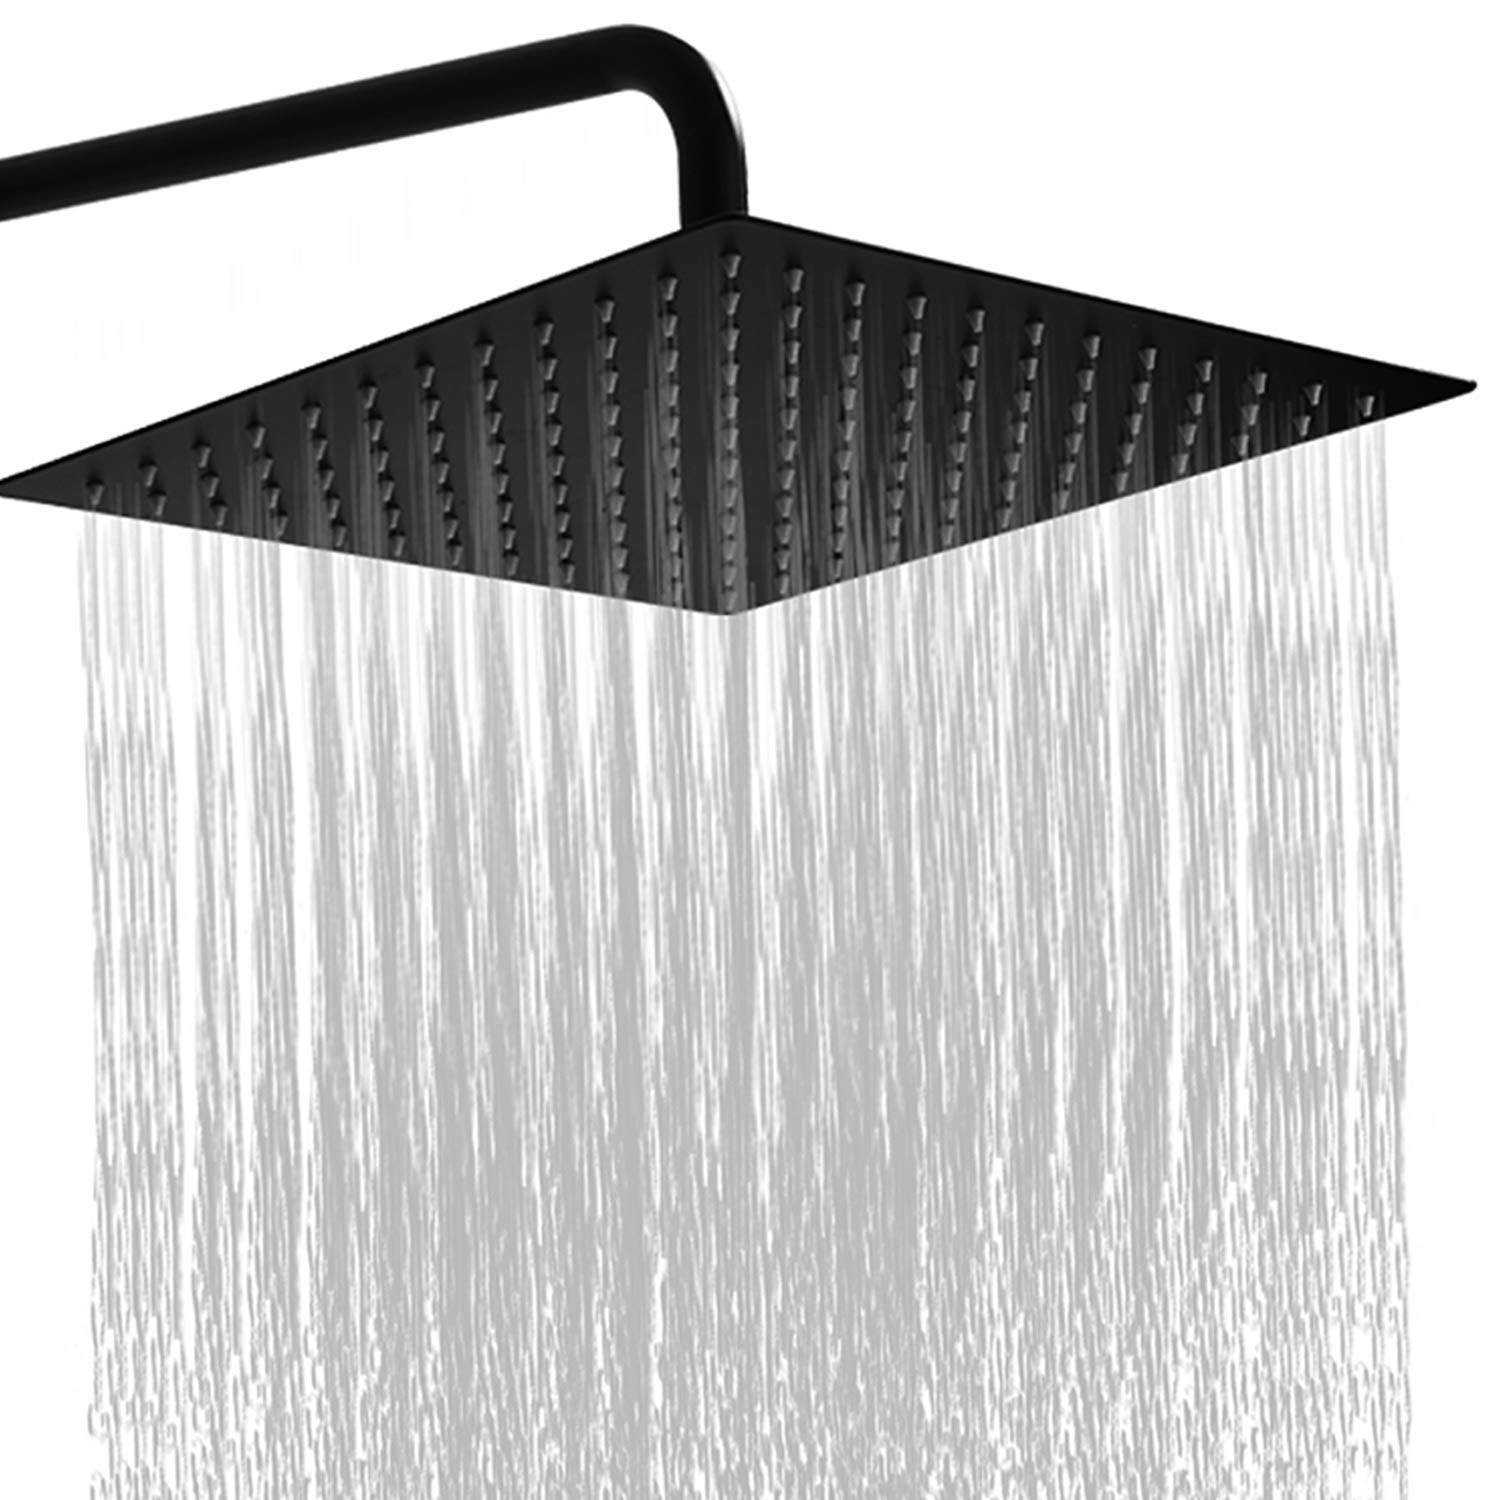 Yifinessyi 12 Inch Square Stainless Steel Shower Head Rainfall Style Shower Head Oil Rubbed Bronze Black